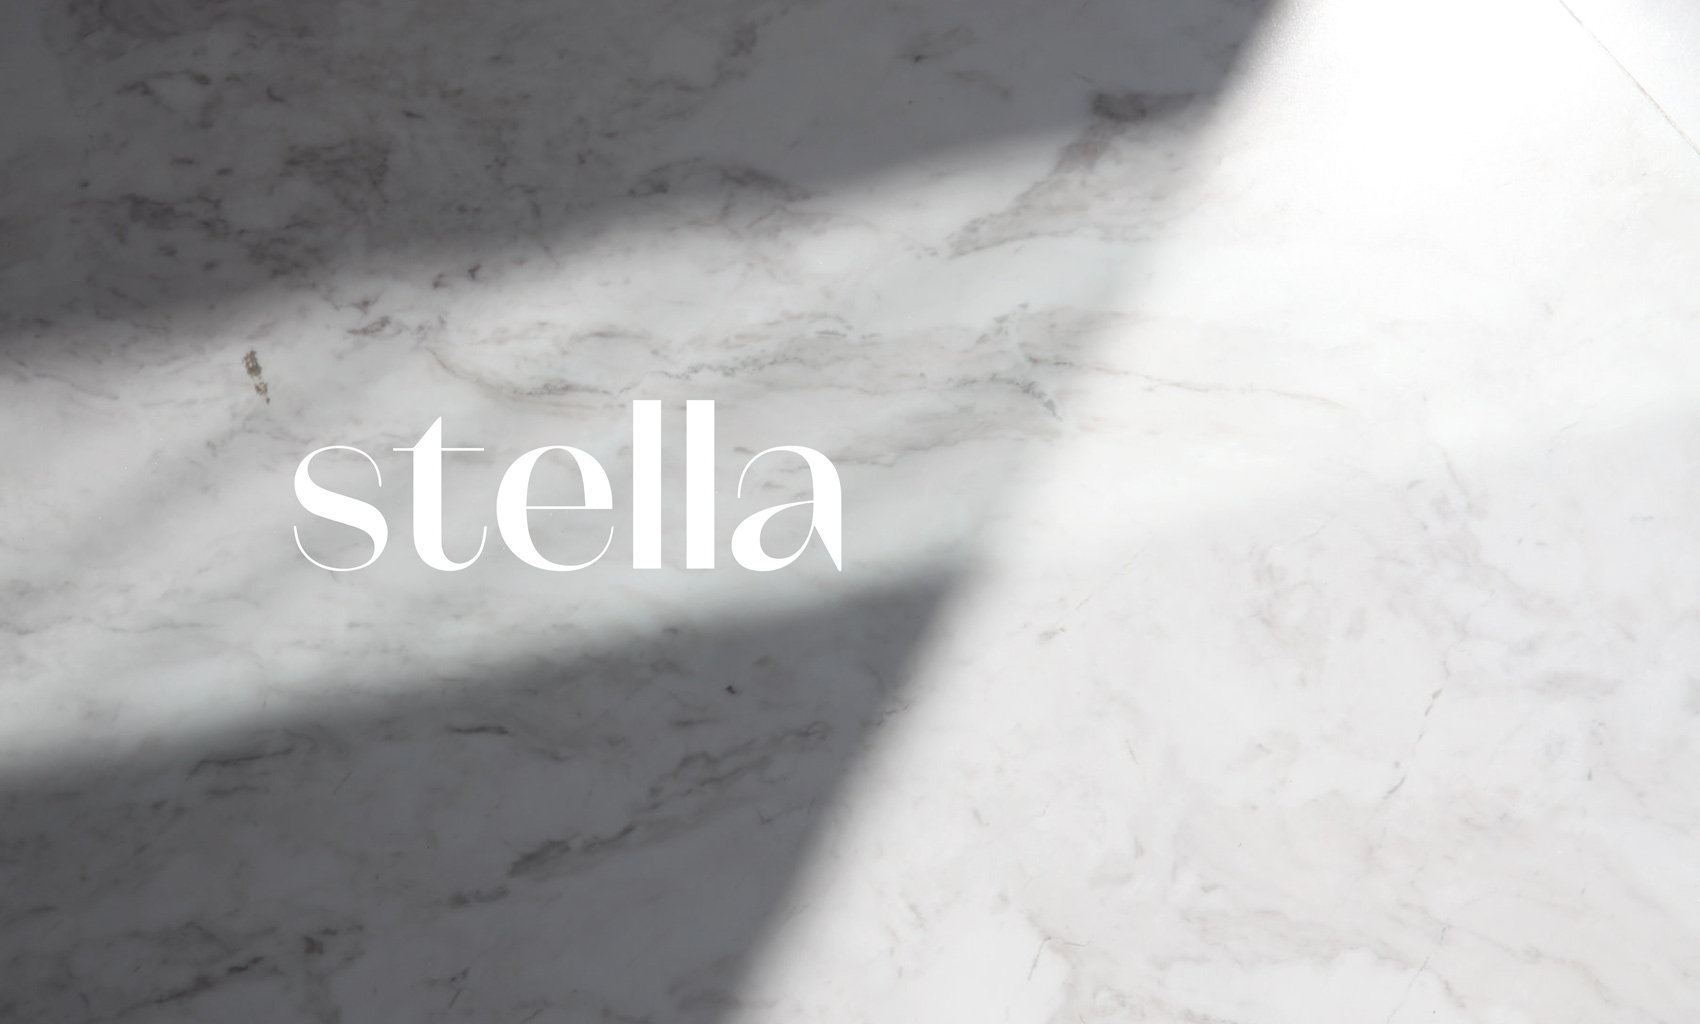 Stella white logo on marble